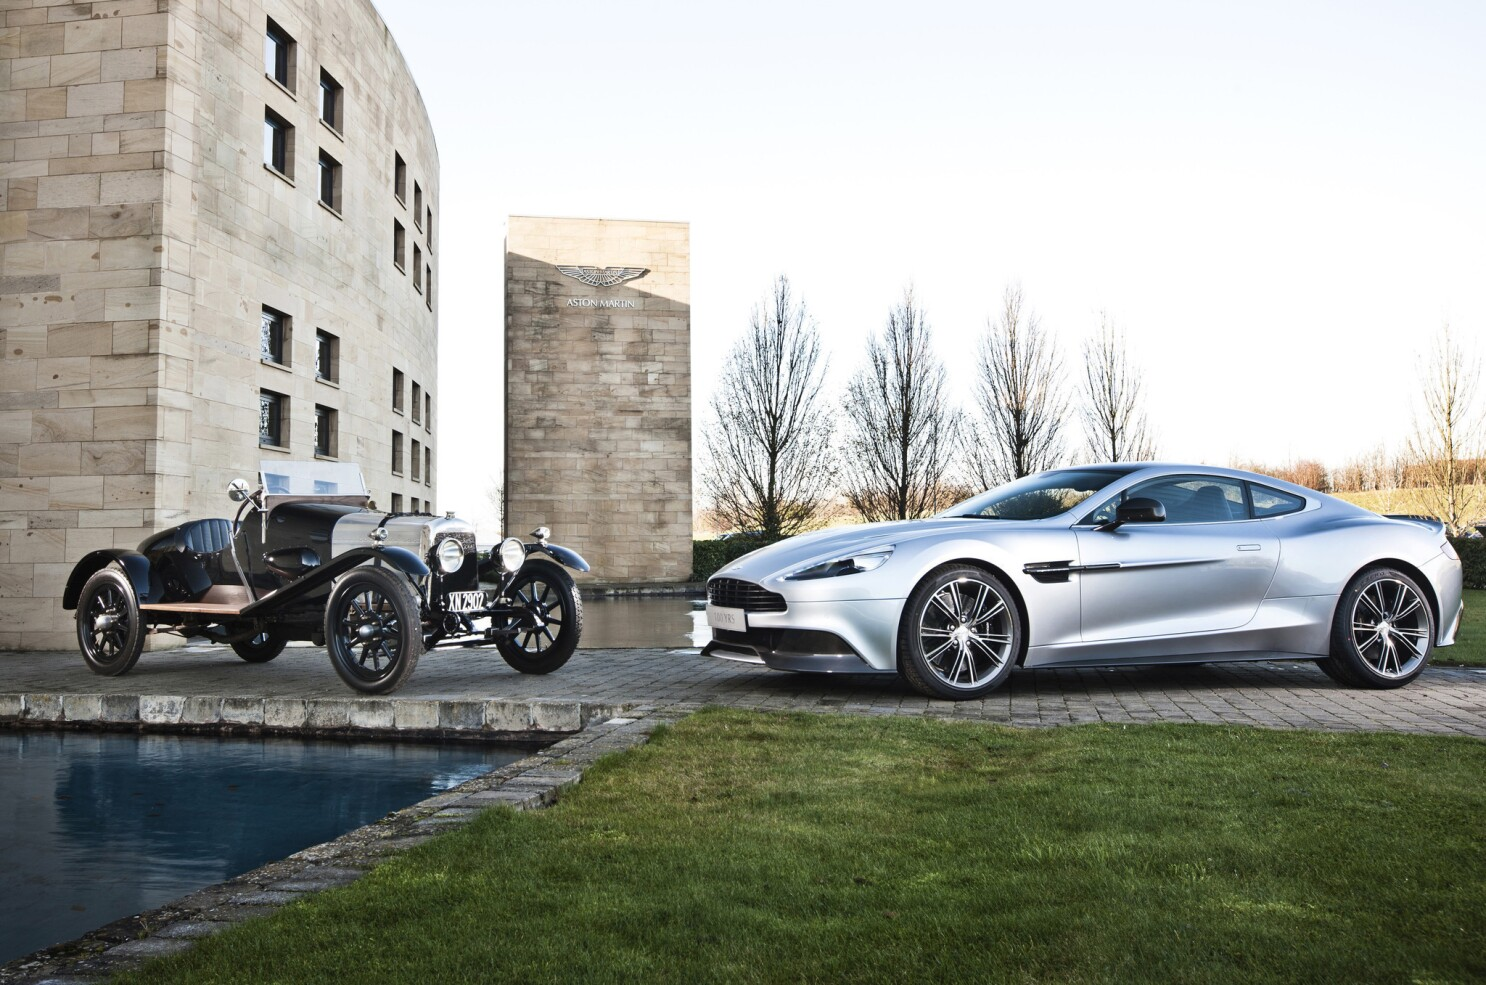 100 Years Later Aston Martin Stays True To Its Classy Sports Car Lineage Los Angeles Times